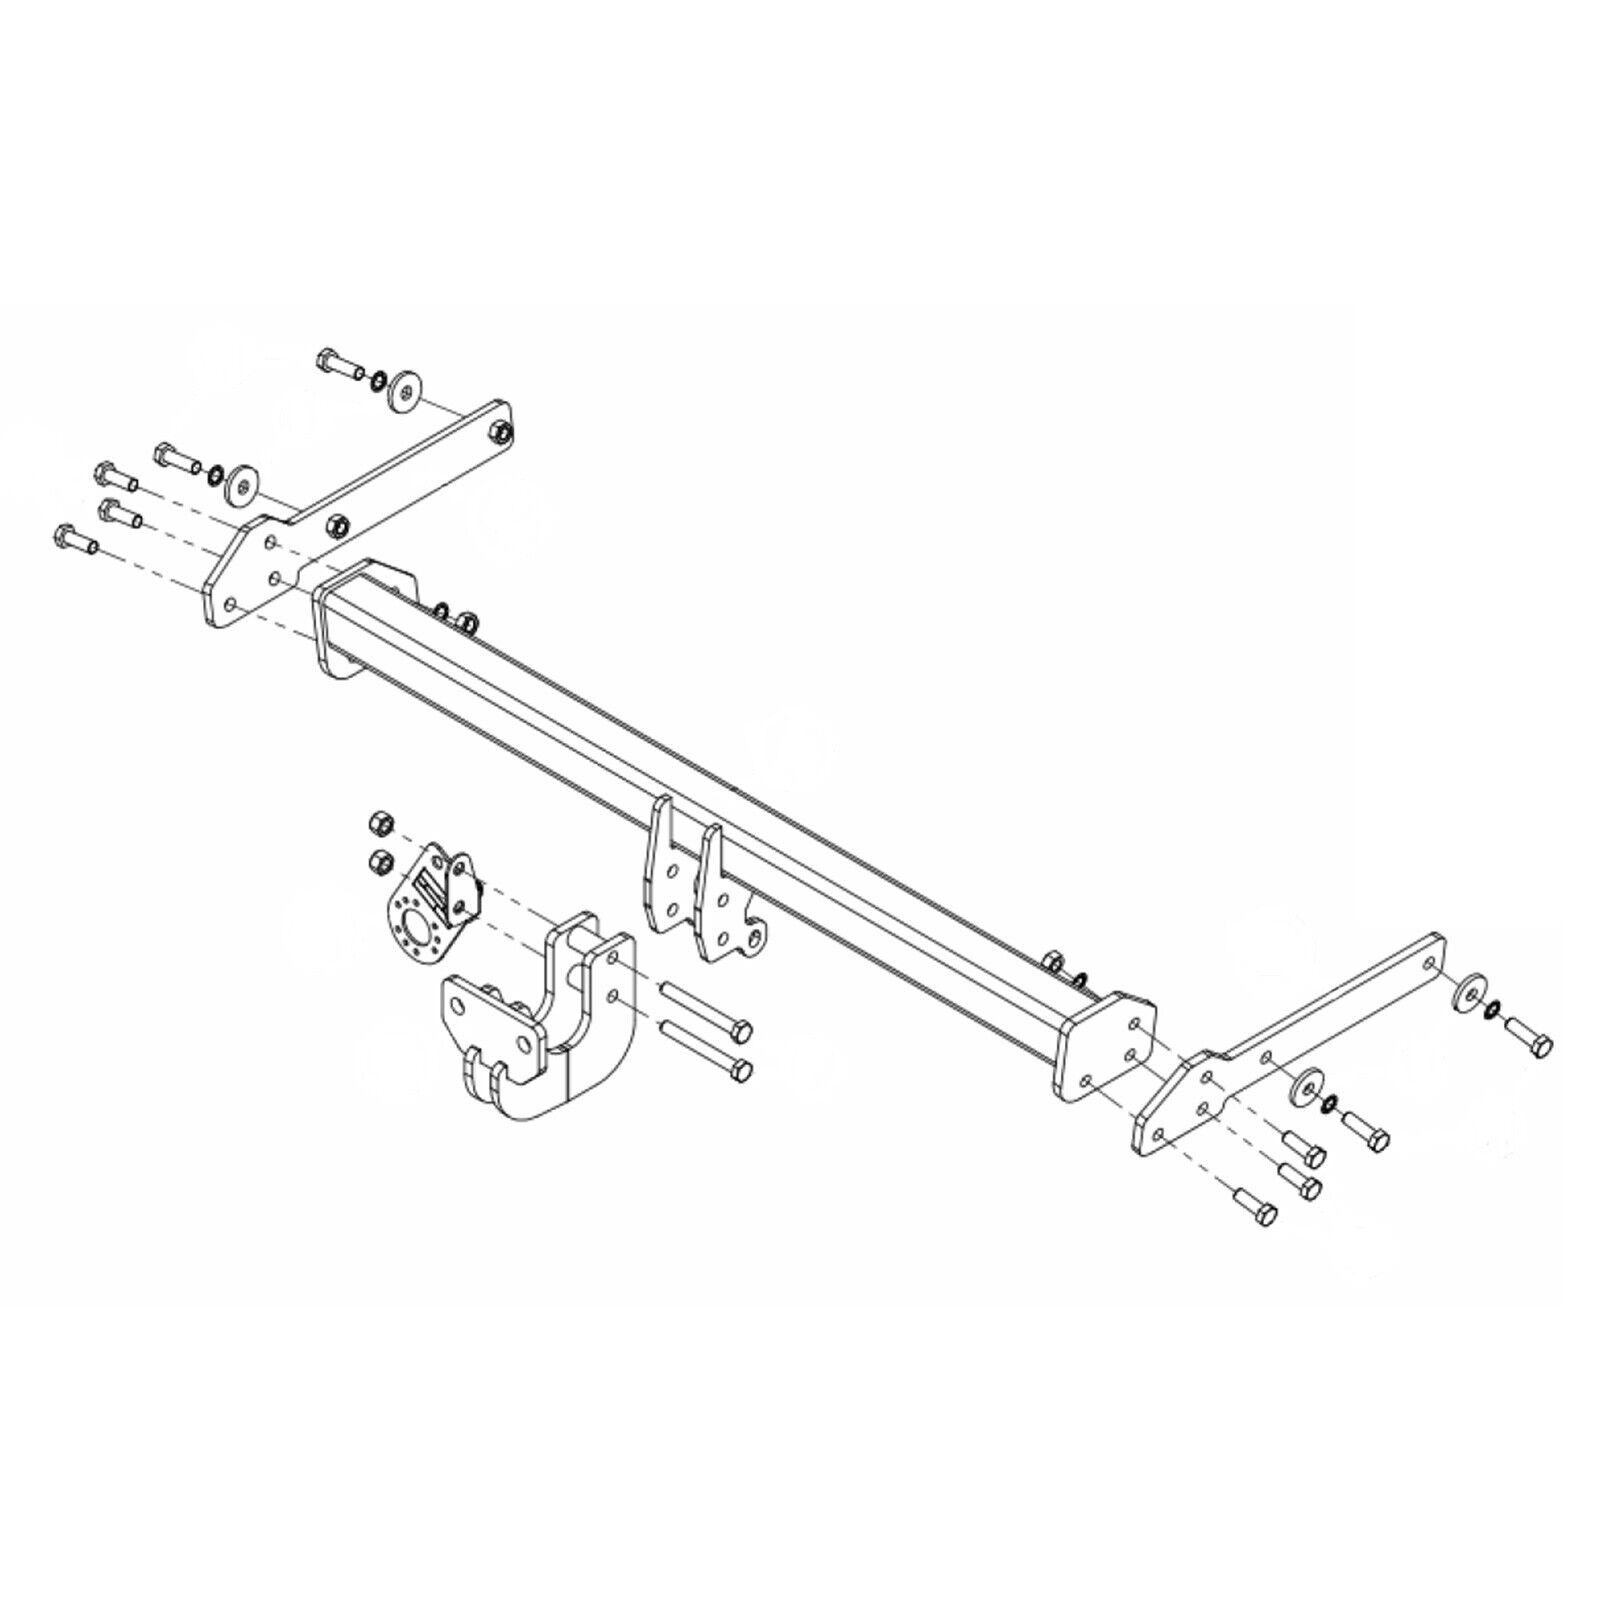 small resolution of details about towbar for skoda octavia estate 2013 onwards flange tow bar